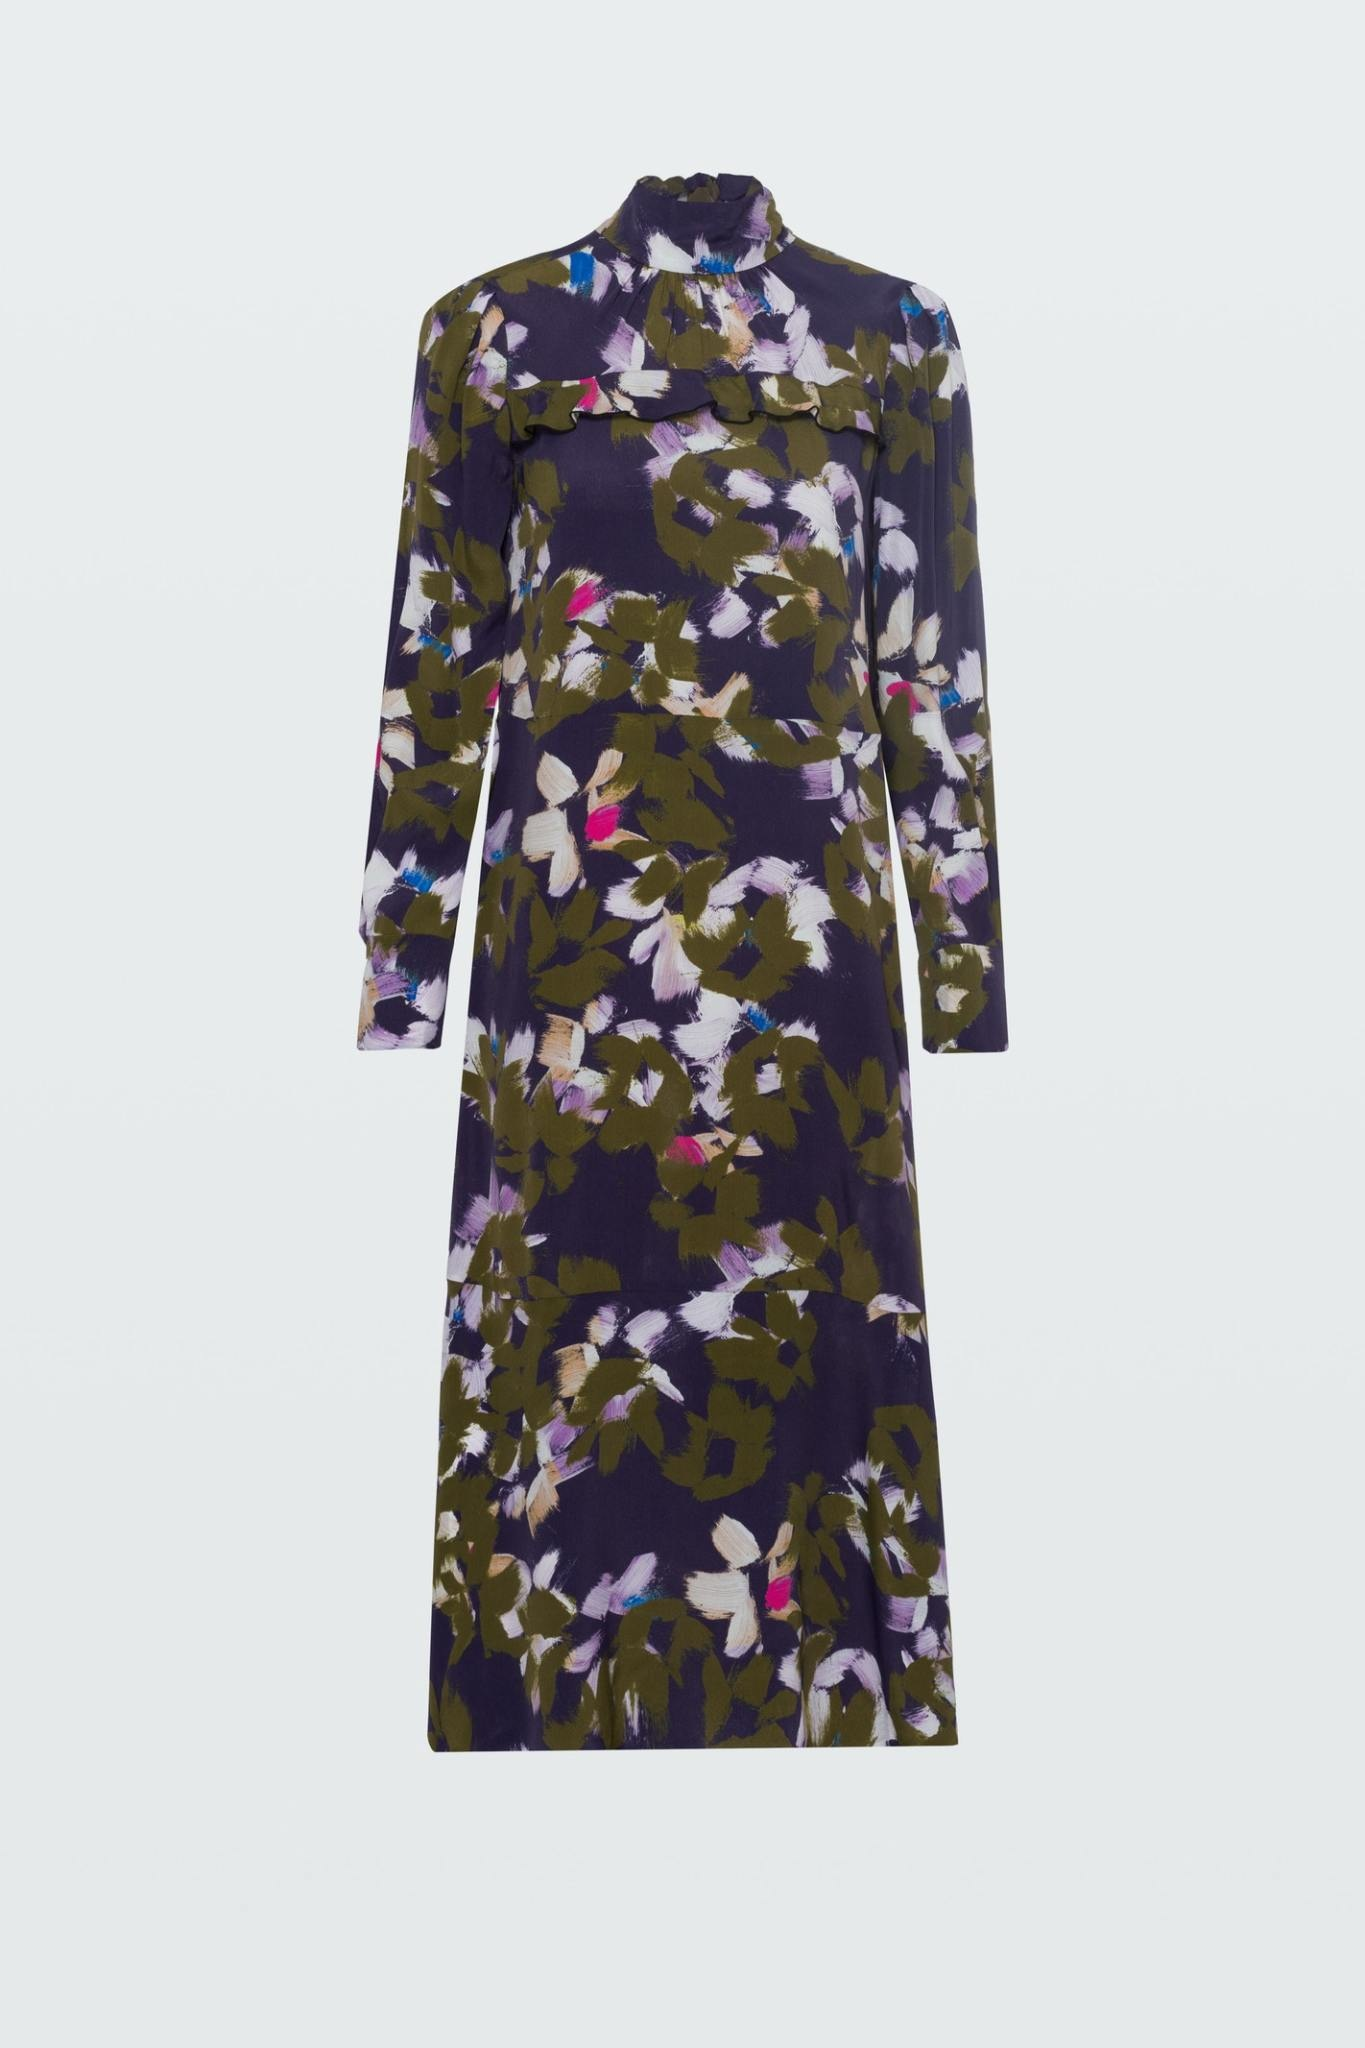 Floral graphics dress Dorothee schumacher-2